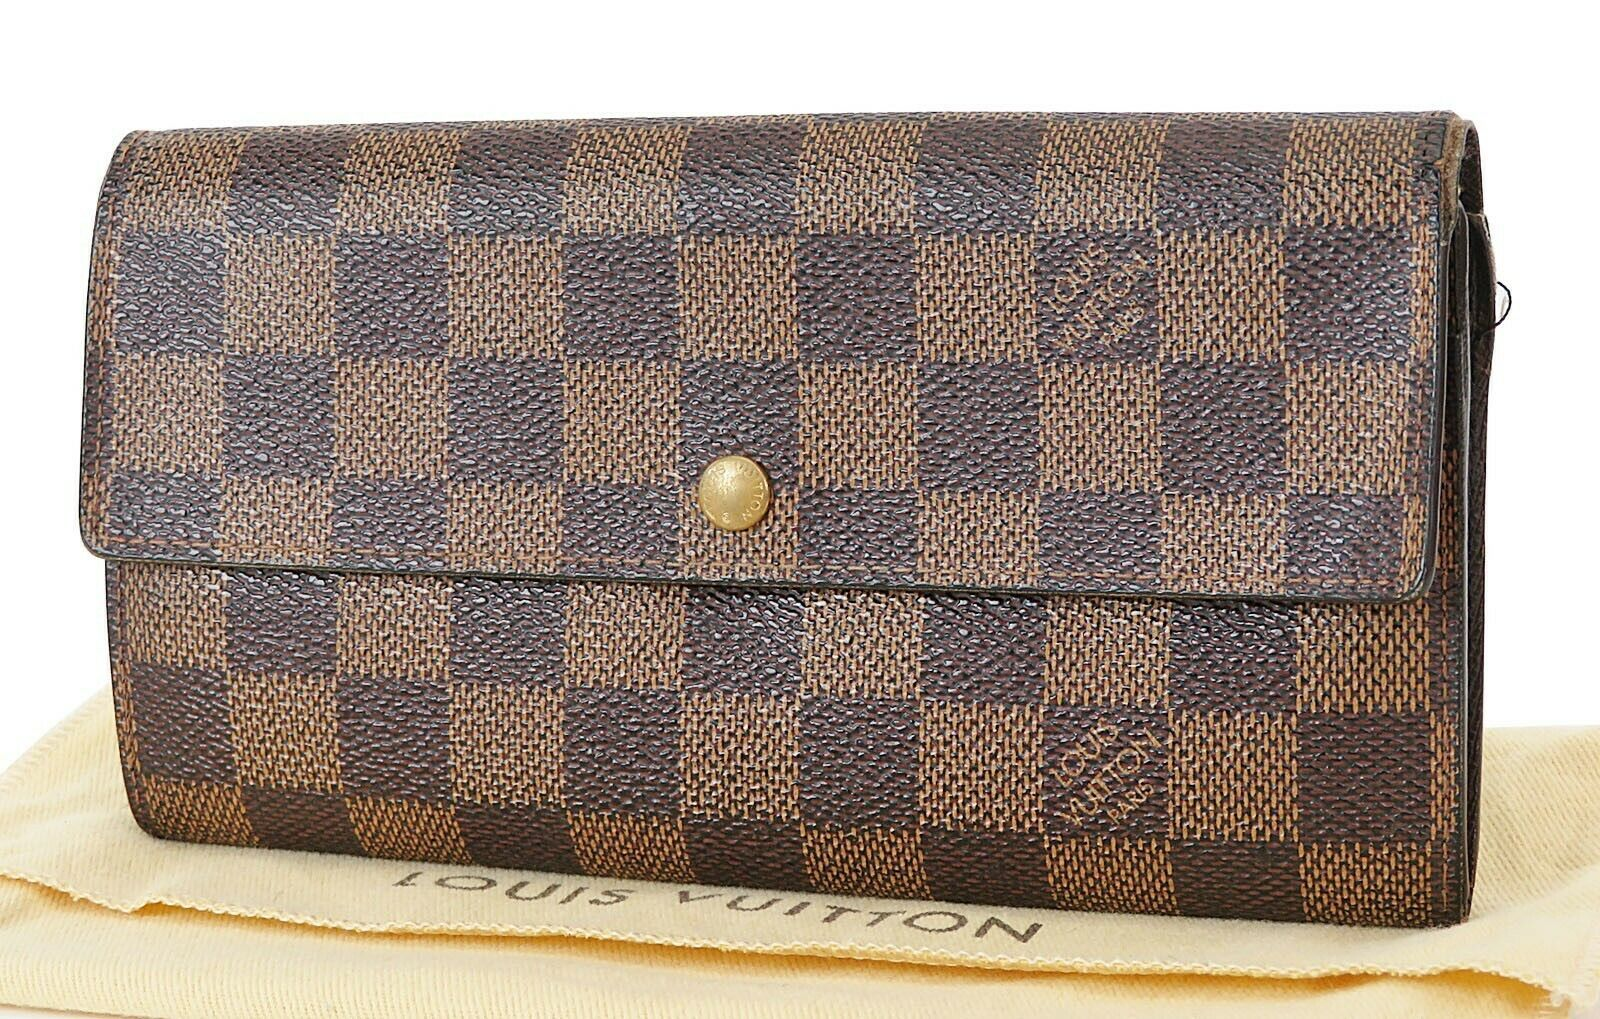 Primary image for Auth LOUIS VUITTON Sarah Long Wallet Damier Ebene Zippered Coin Purse #37515